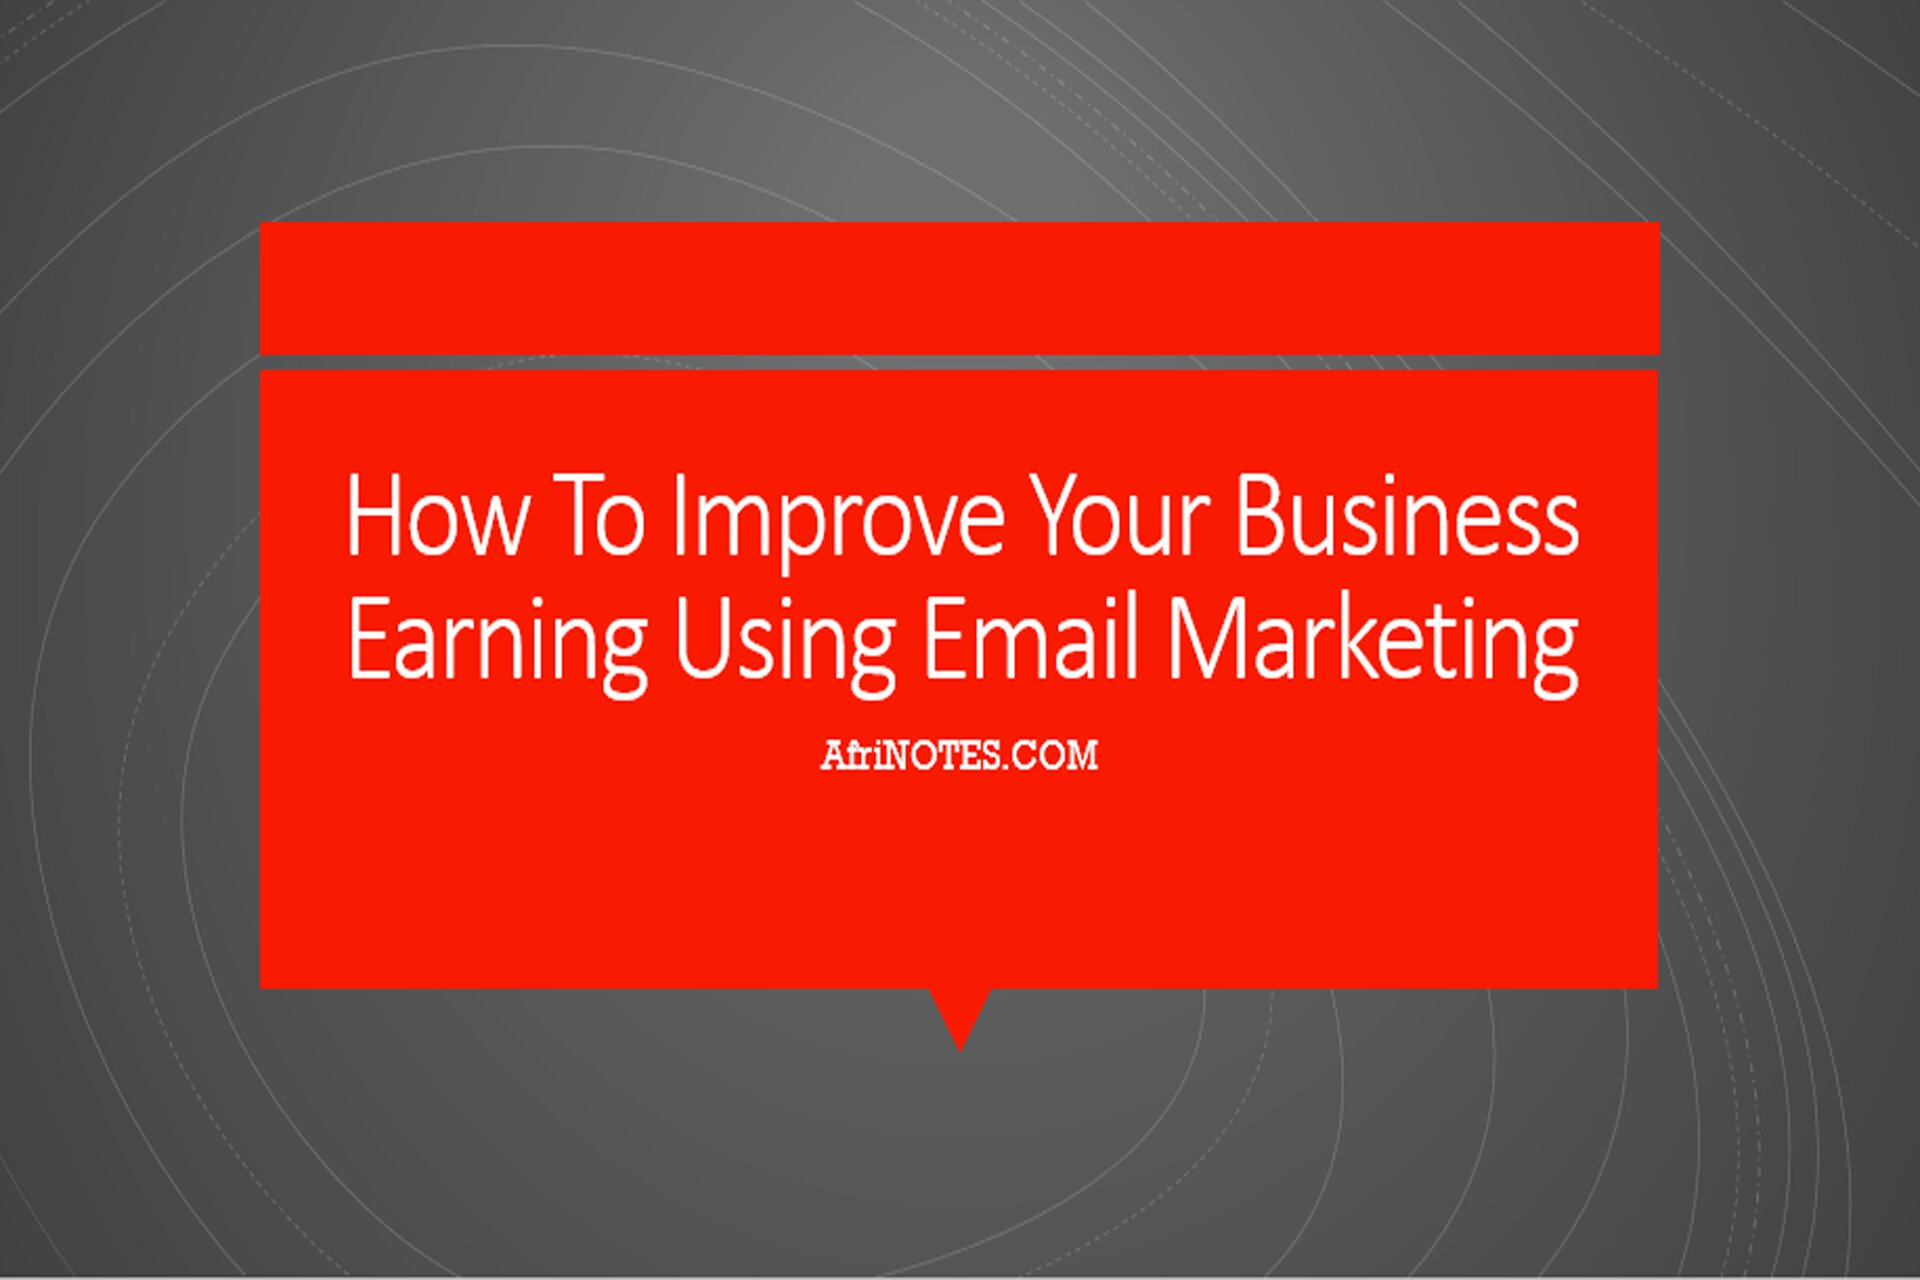 How To Improve Your Business Earning Using Email Marketing